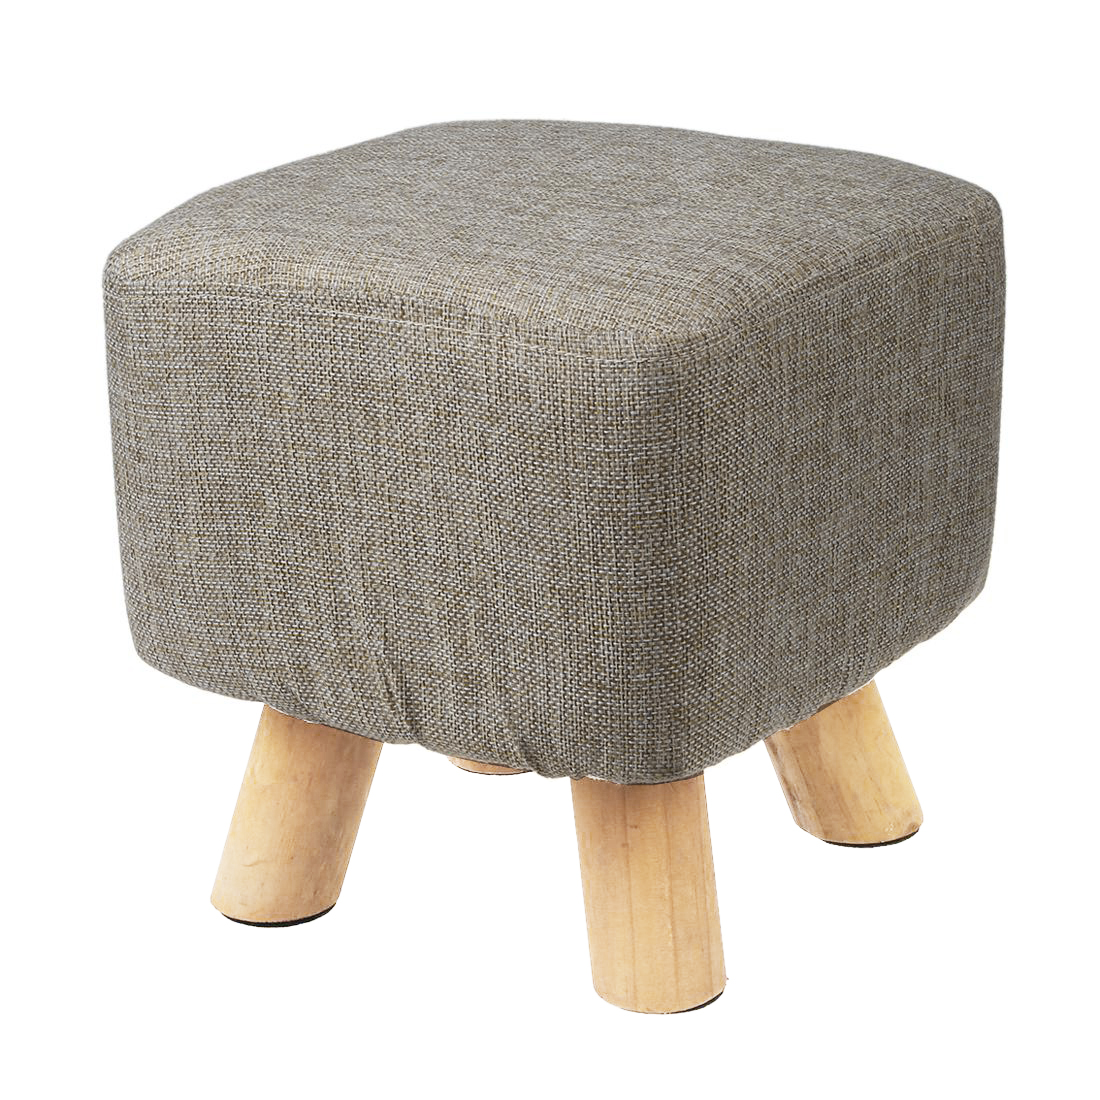 Modern Luxury Upholstered Footstool Pouffe Stool + Wooden Leg Pattern:Square Fabric:Grey(4 Legs) Modern Luxury Upholstered Footstool Pouffe Stool + Wooden Leg Pattern:Square Fabric:Grey(4 Legs)